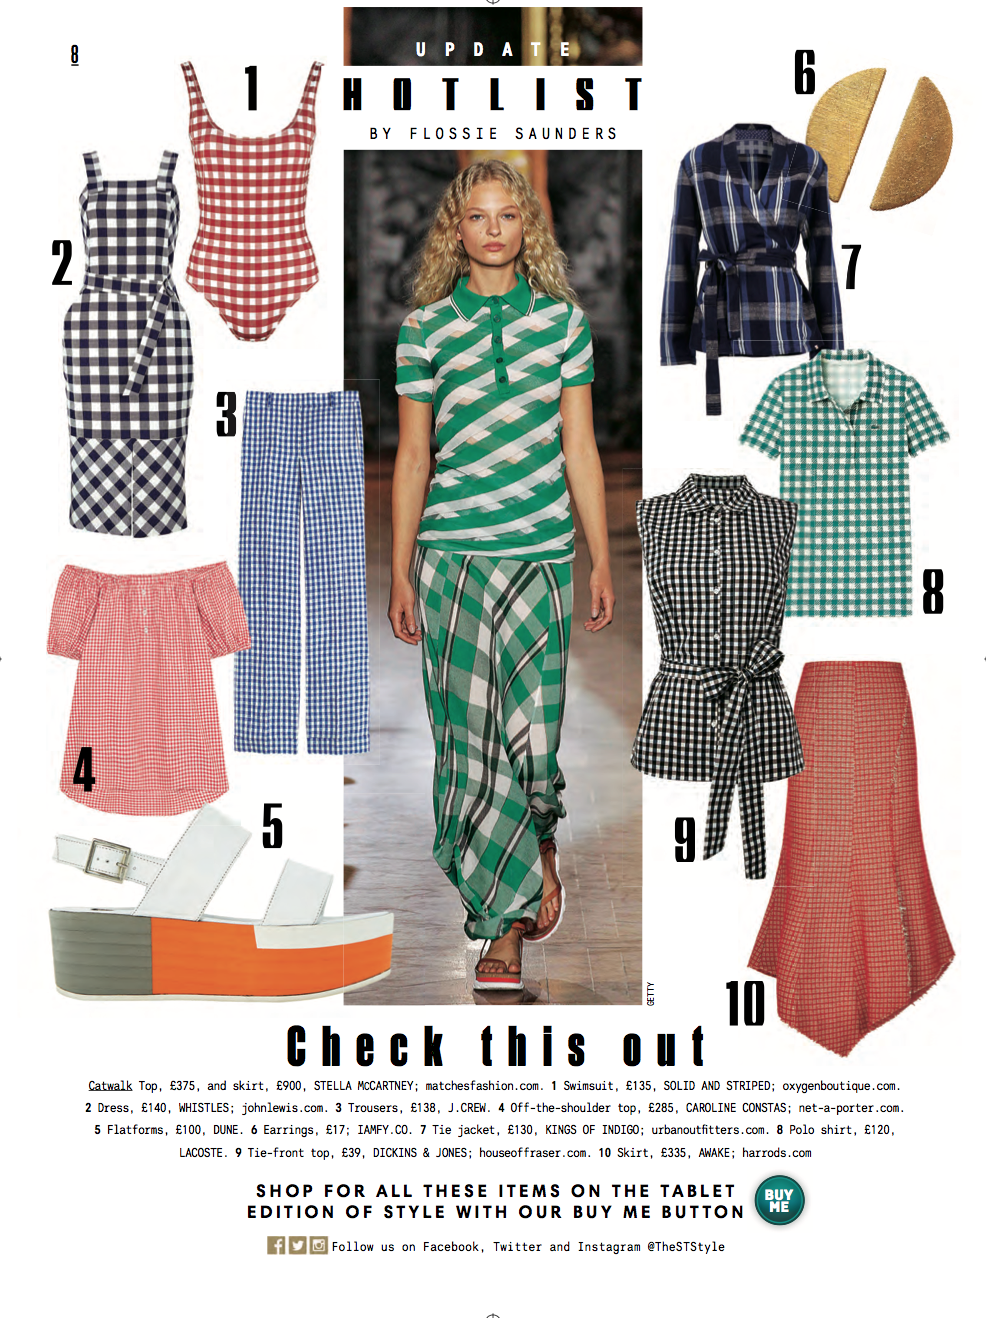 Sunday Times Style 24th April 2016